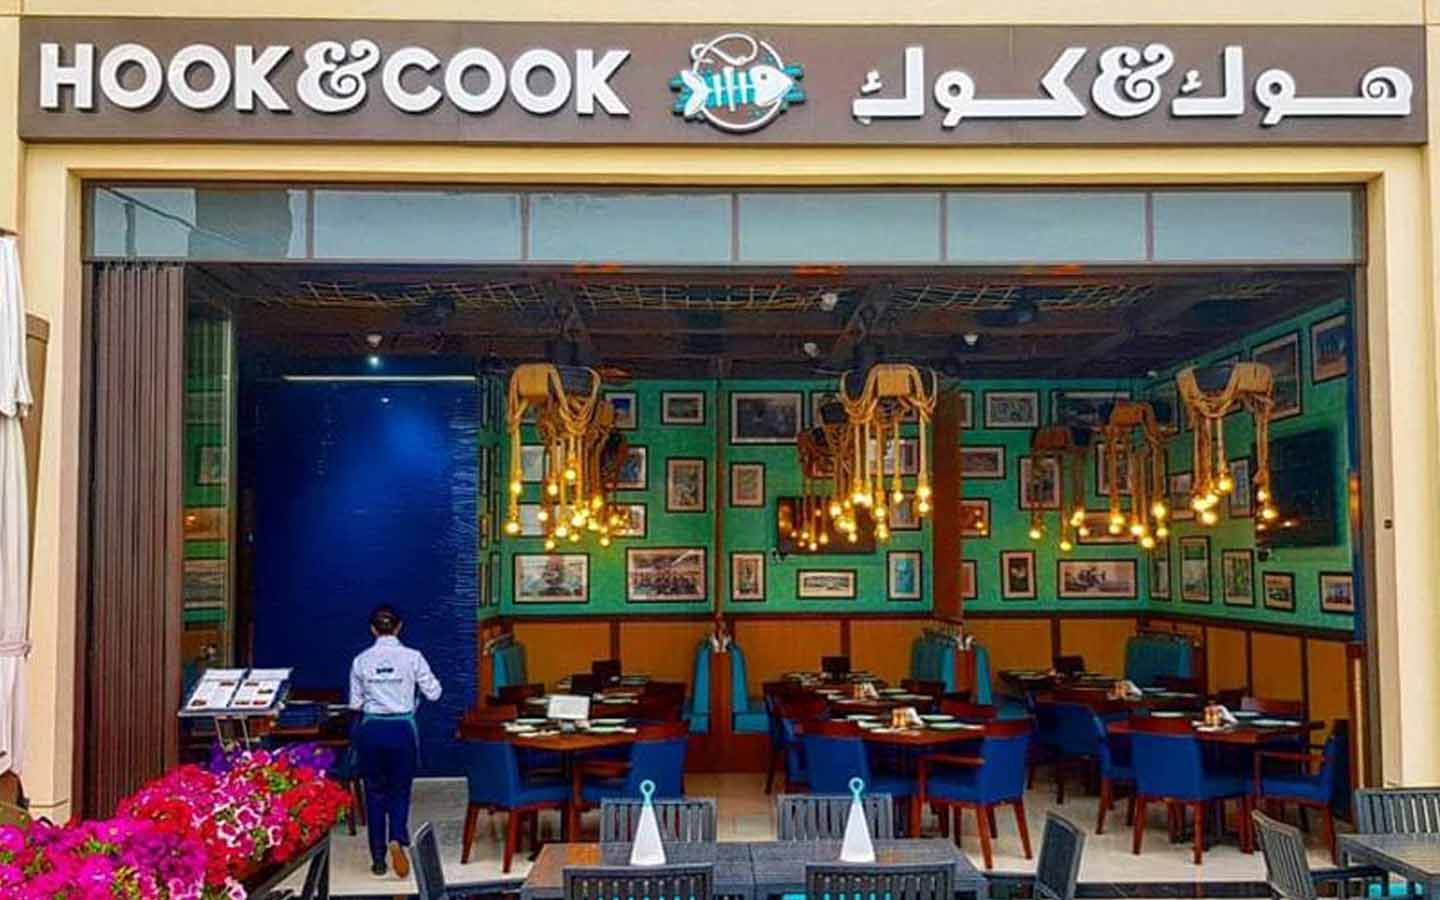 Hook and Cook restaurant